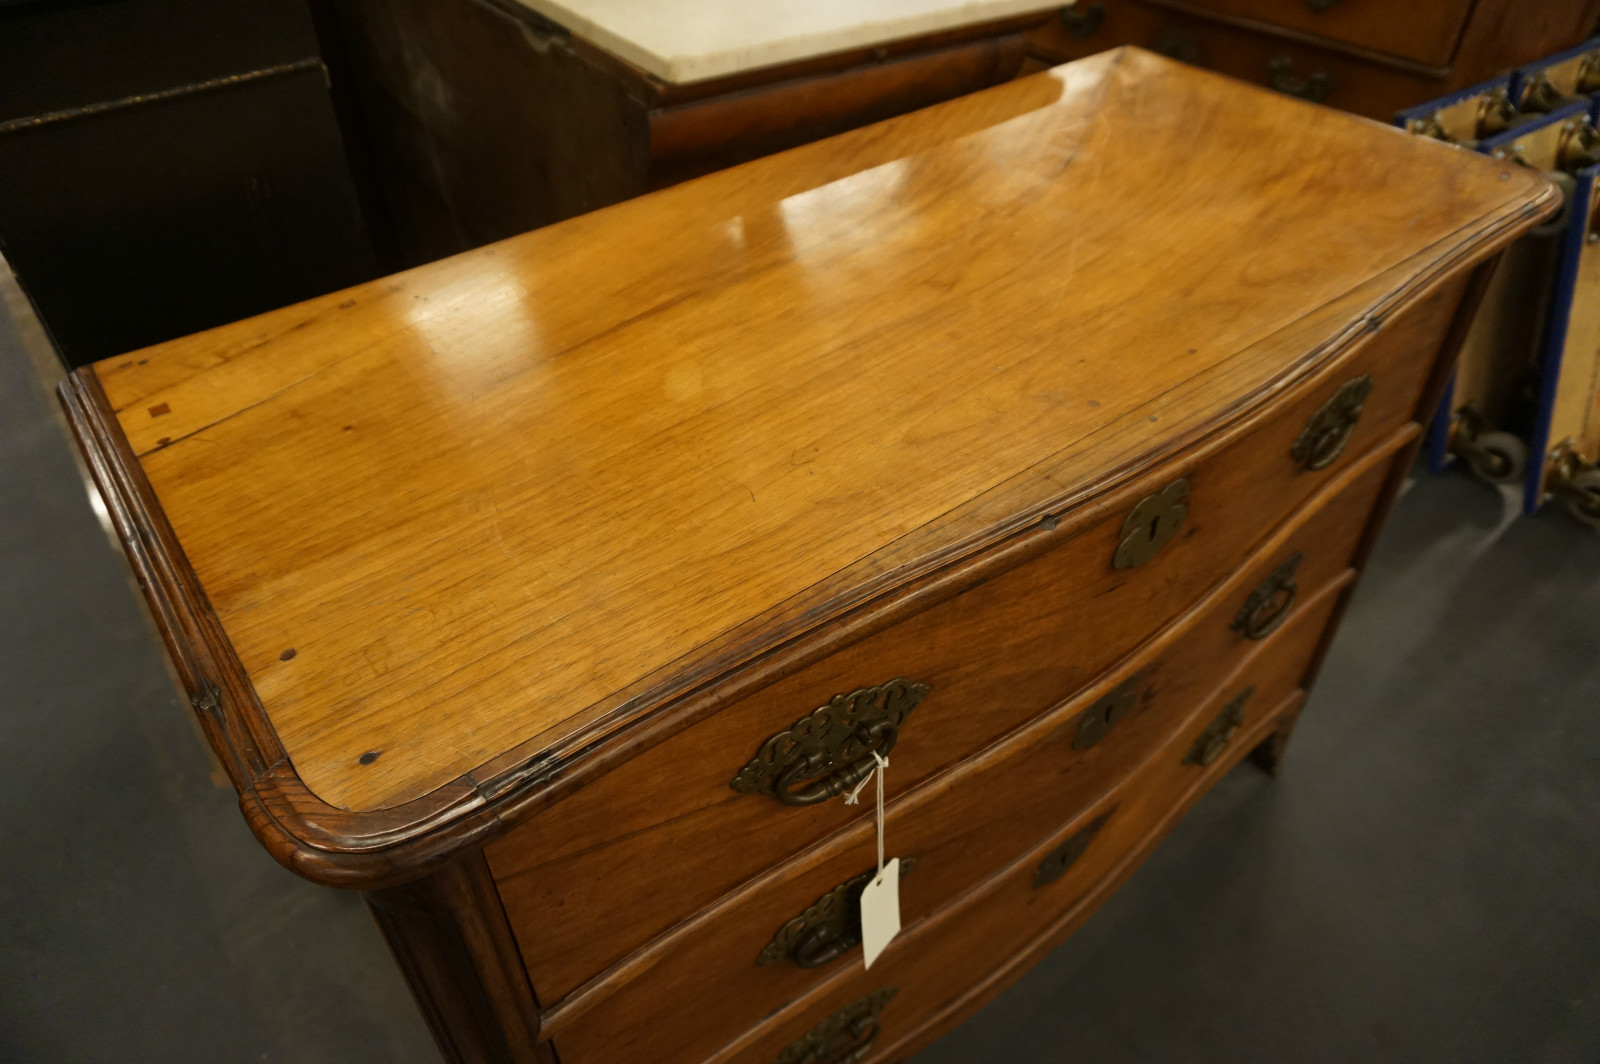 Colonial chest of drawers 18th century 03 commodes 01 furniture strydhagen - Commode style colonial ...